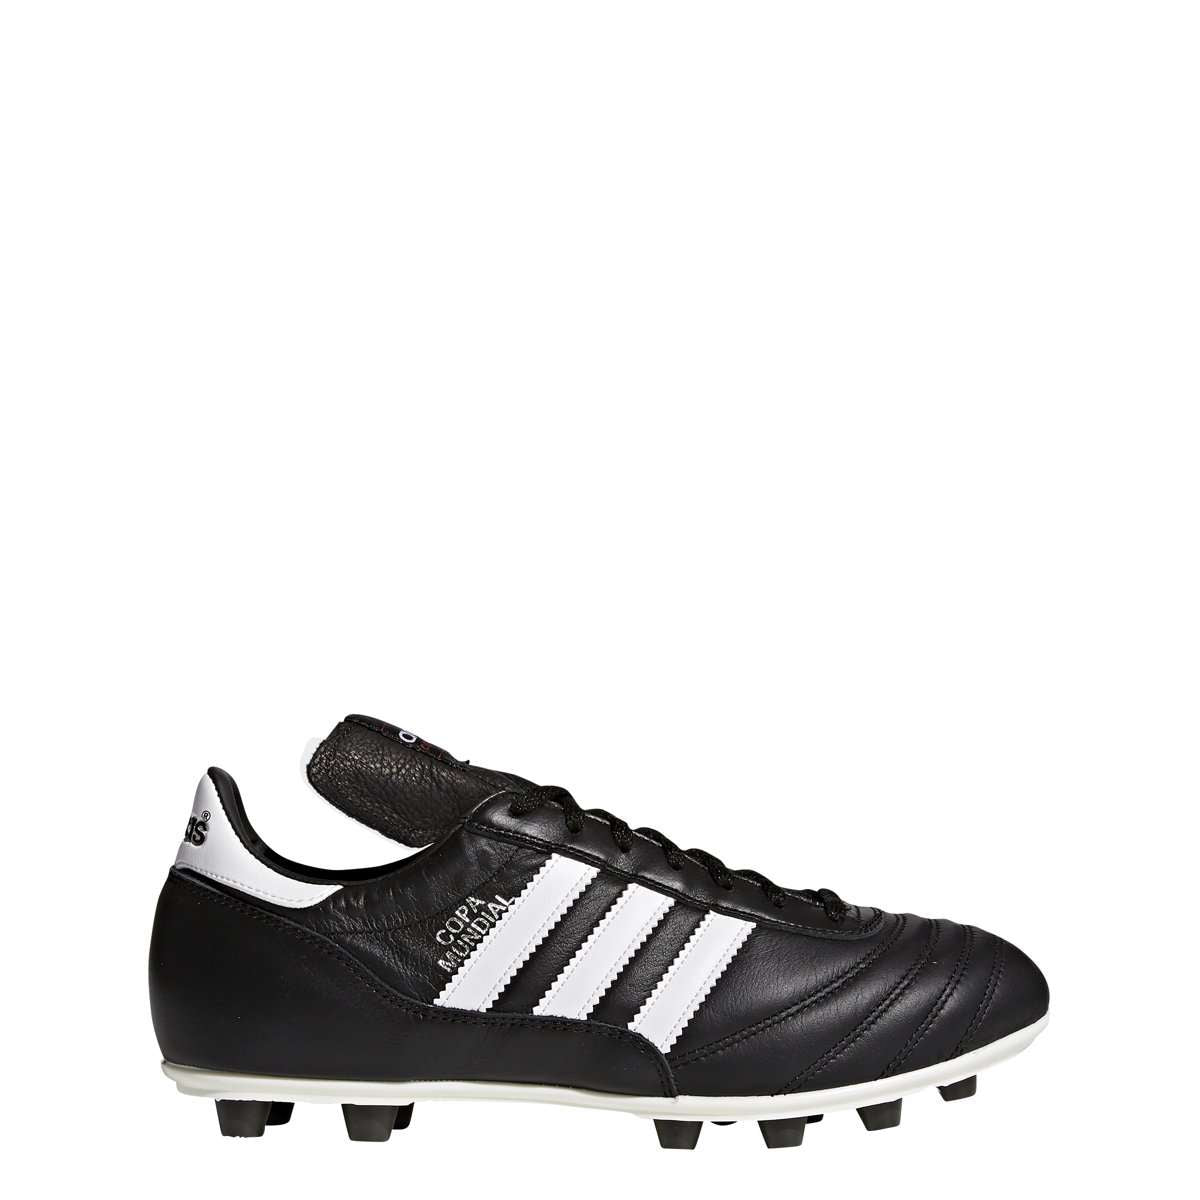 adidas Copa Mundial Men's Soccer Cleats